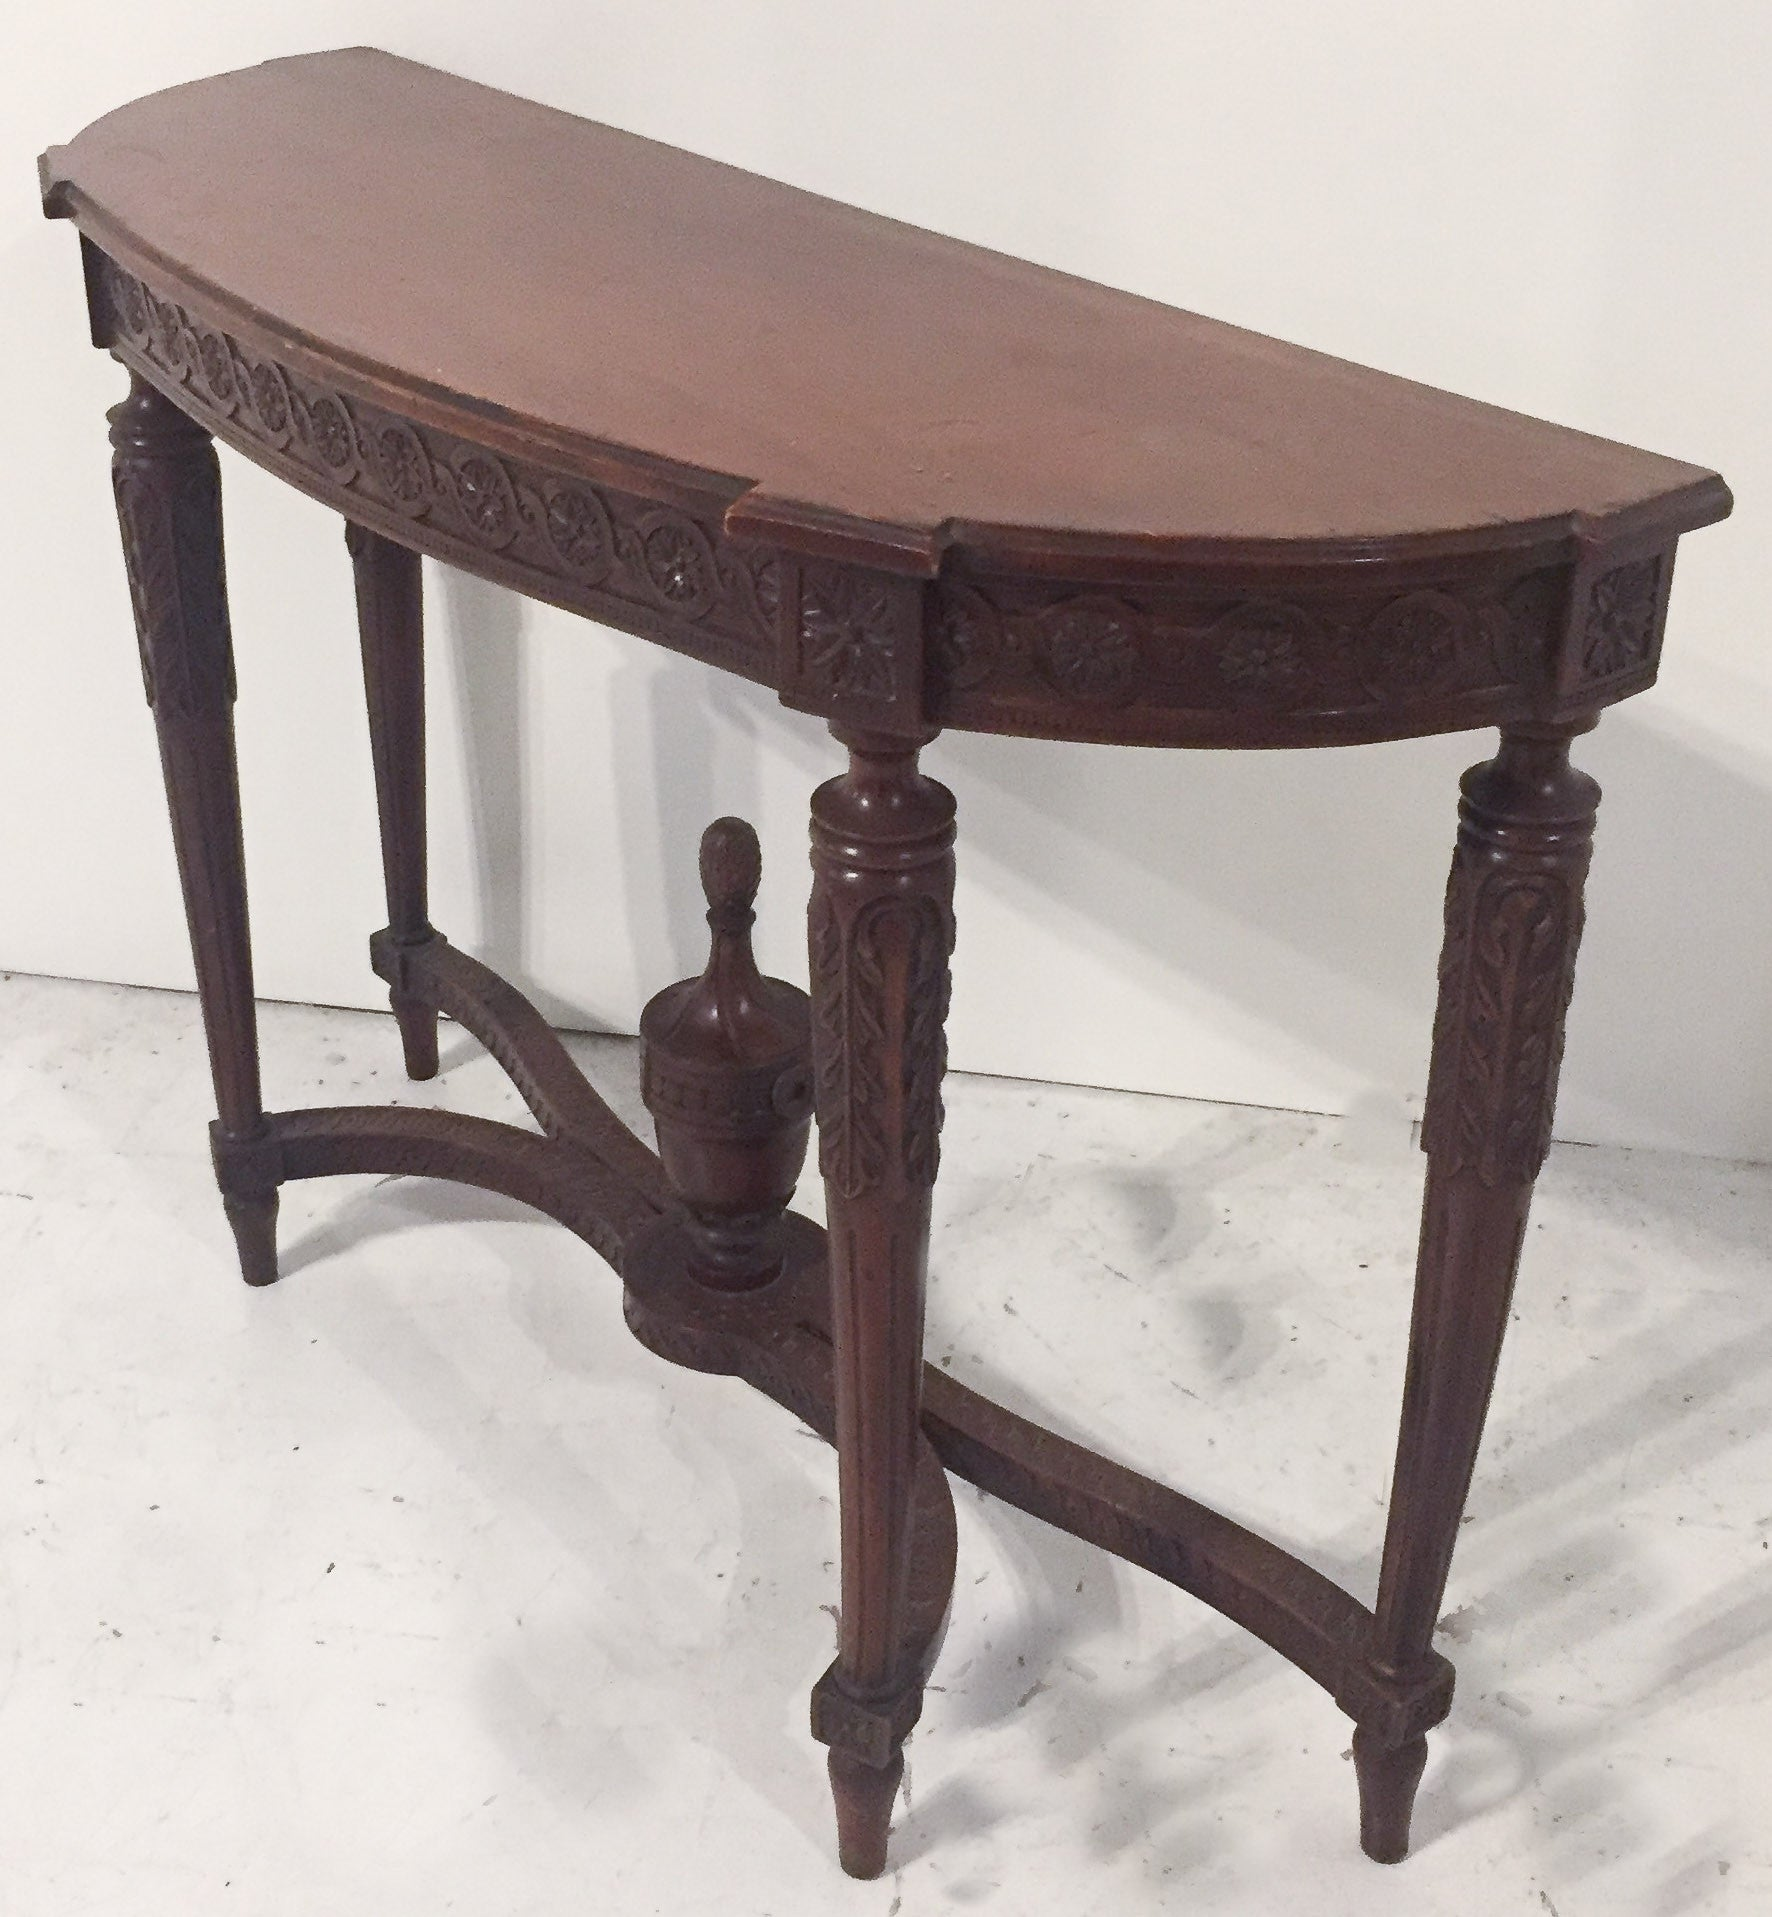 Antique Mahogany Demilune, Console Table